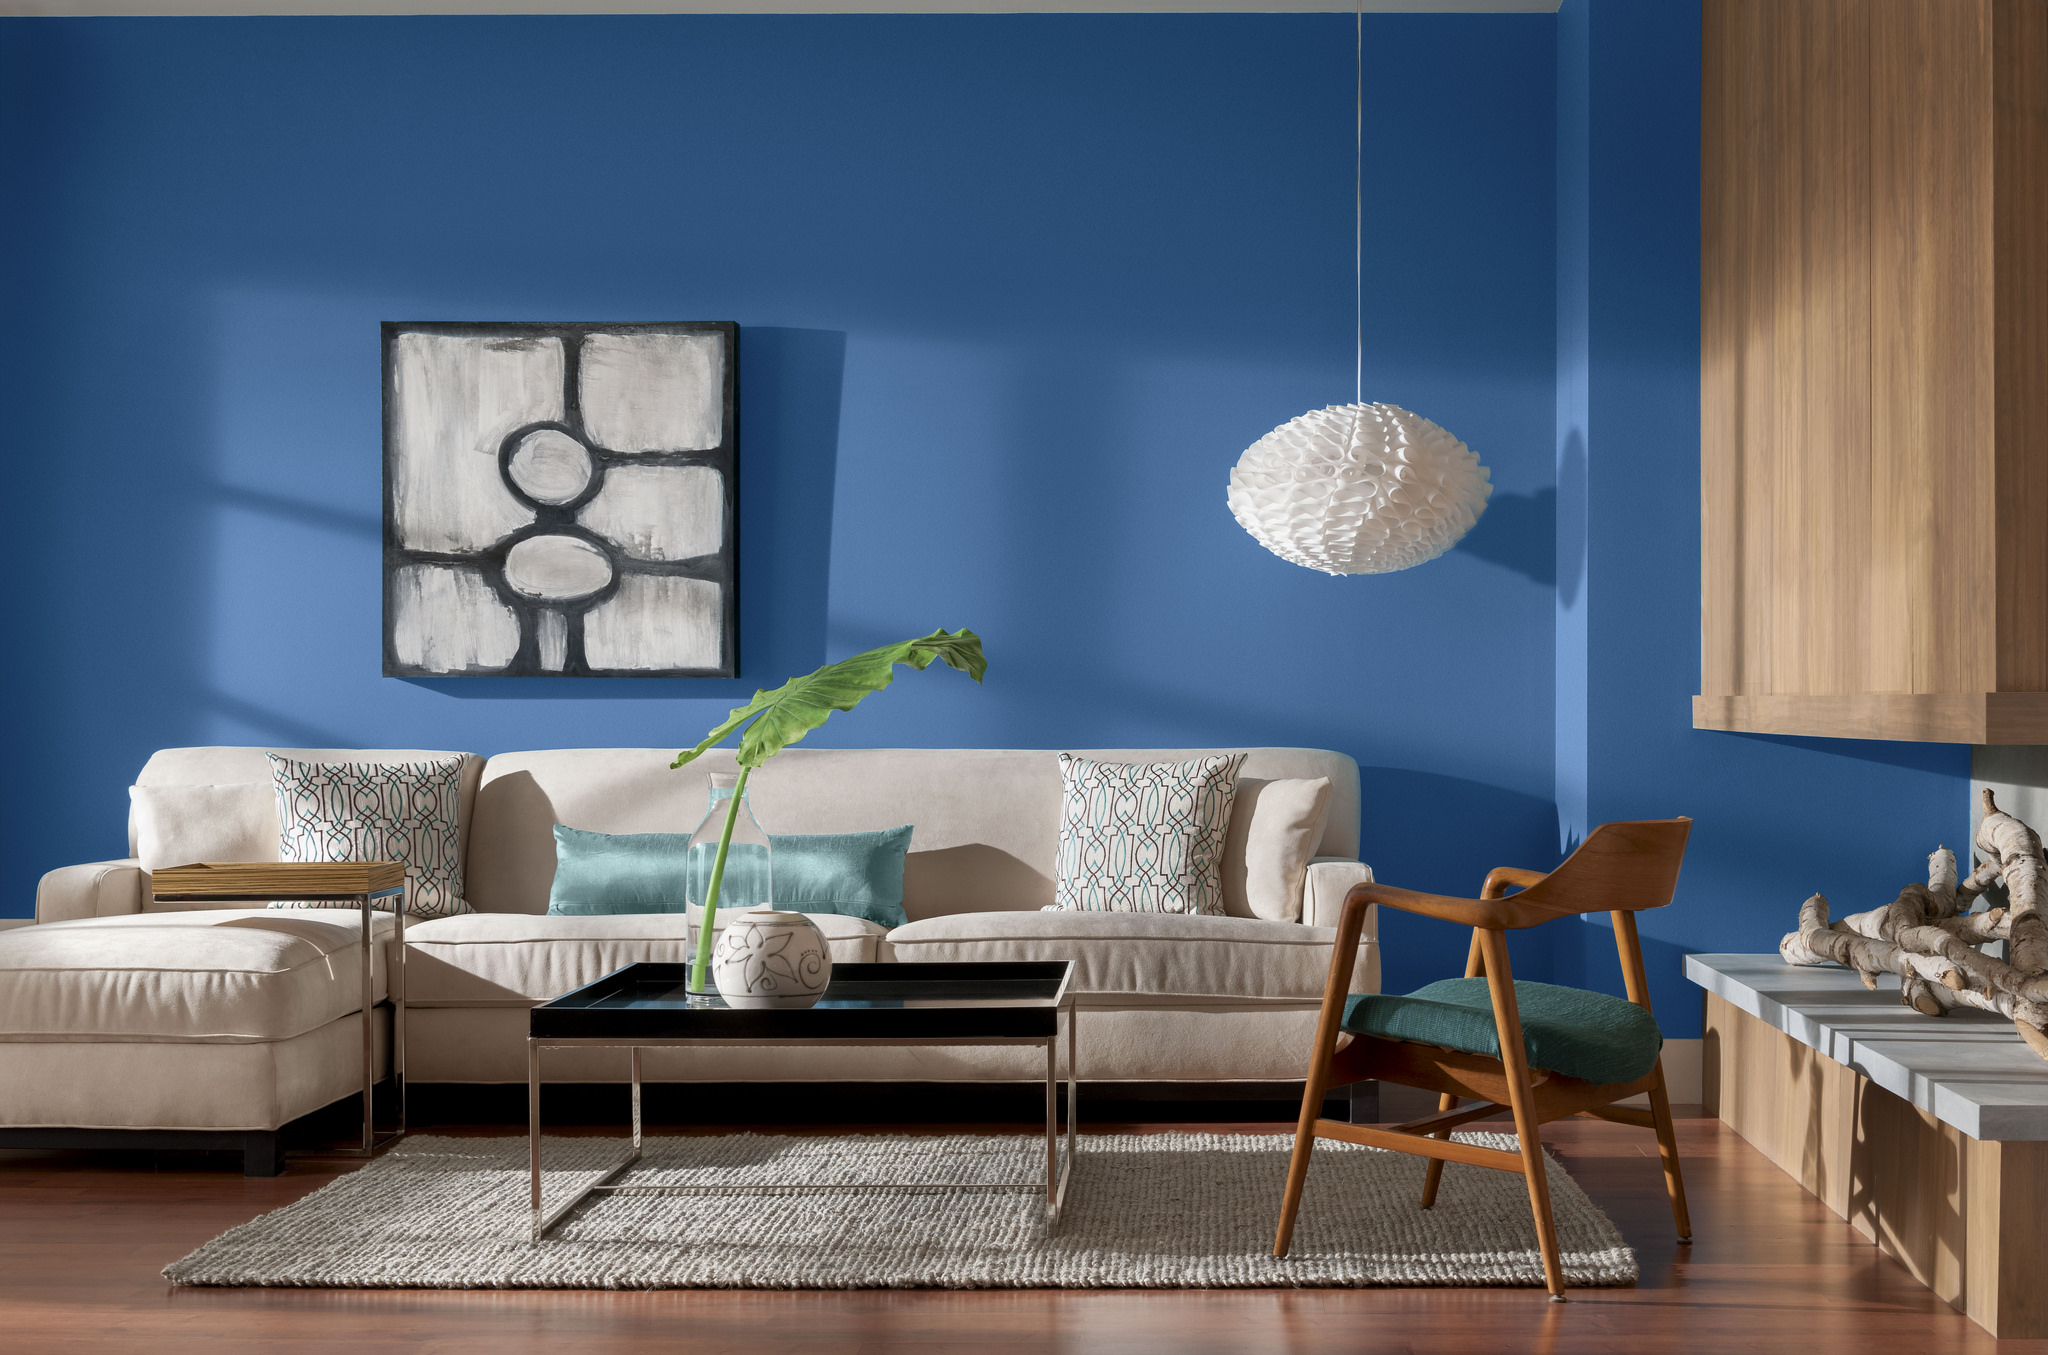 Living Room With Blue Painted Walls And Beige Sofa